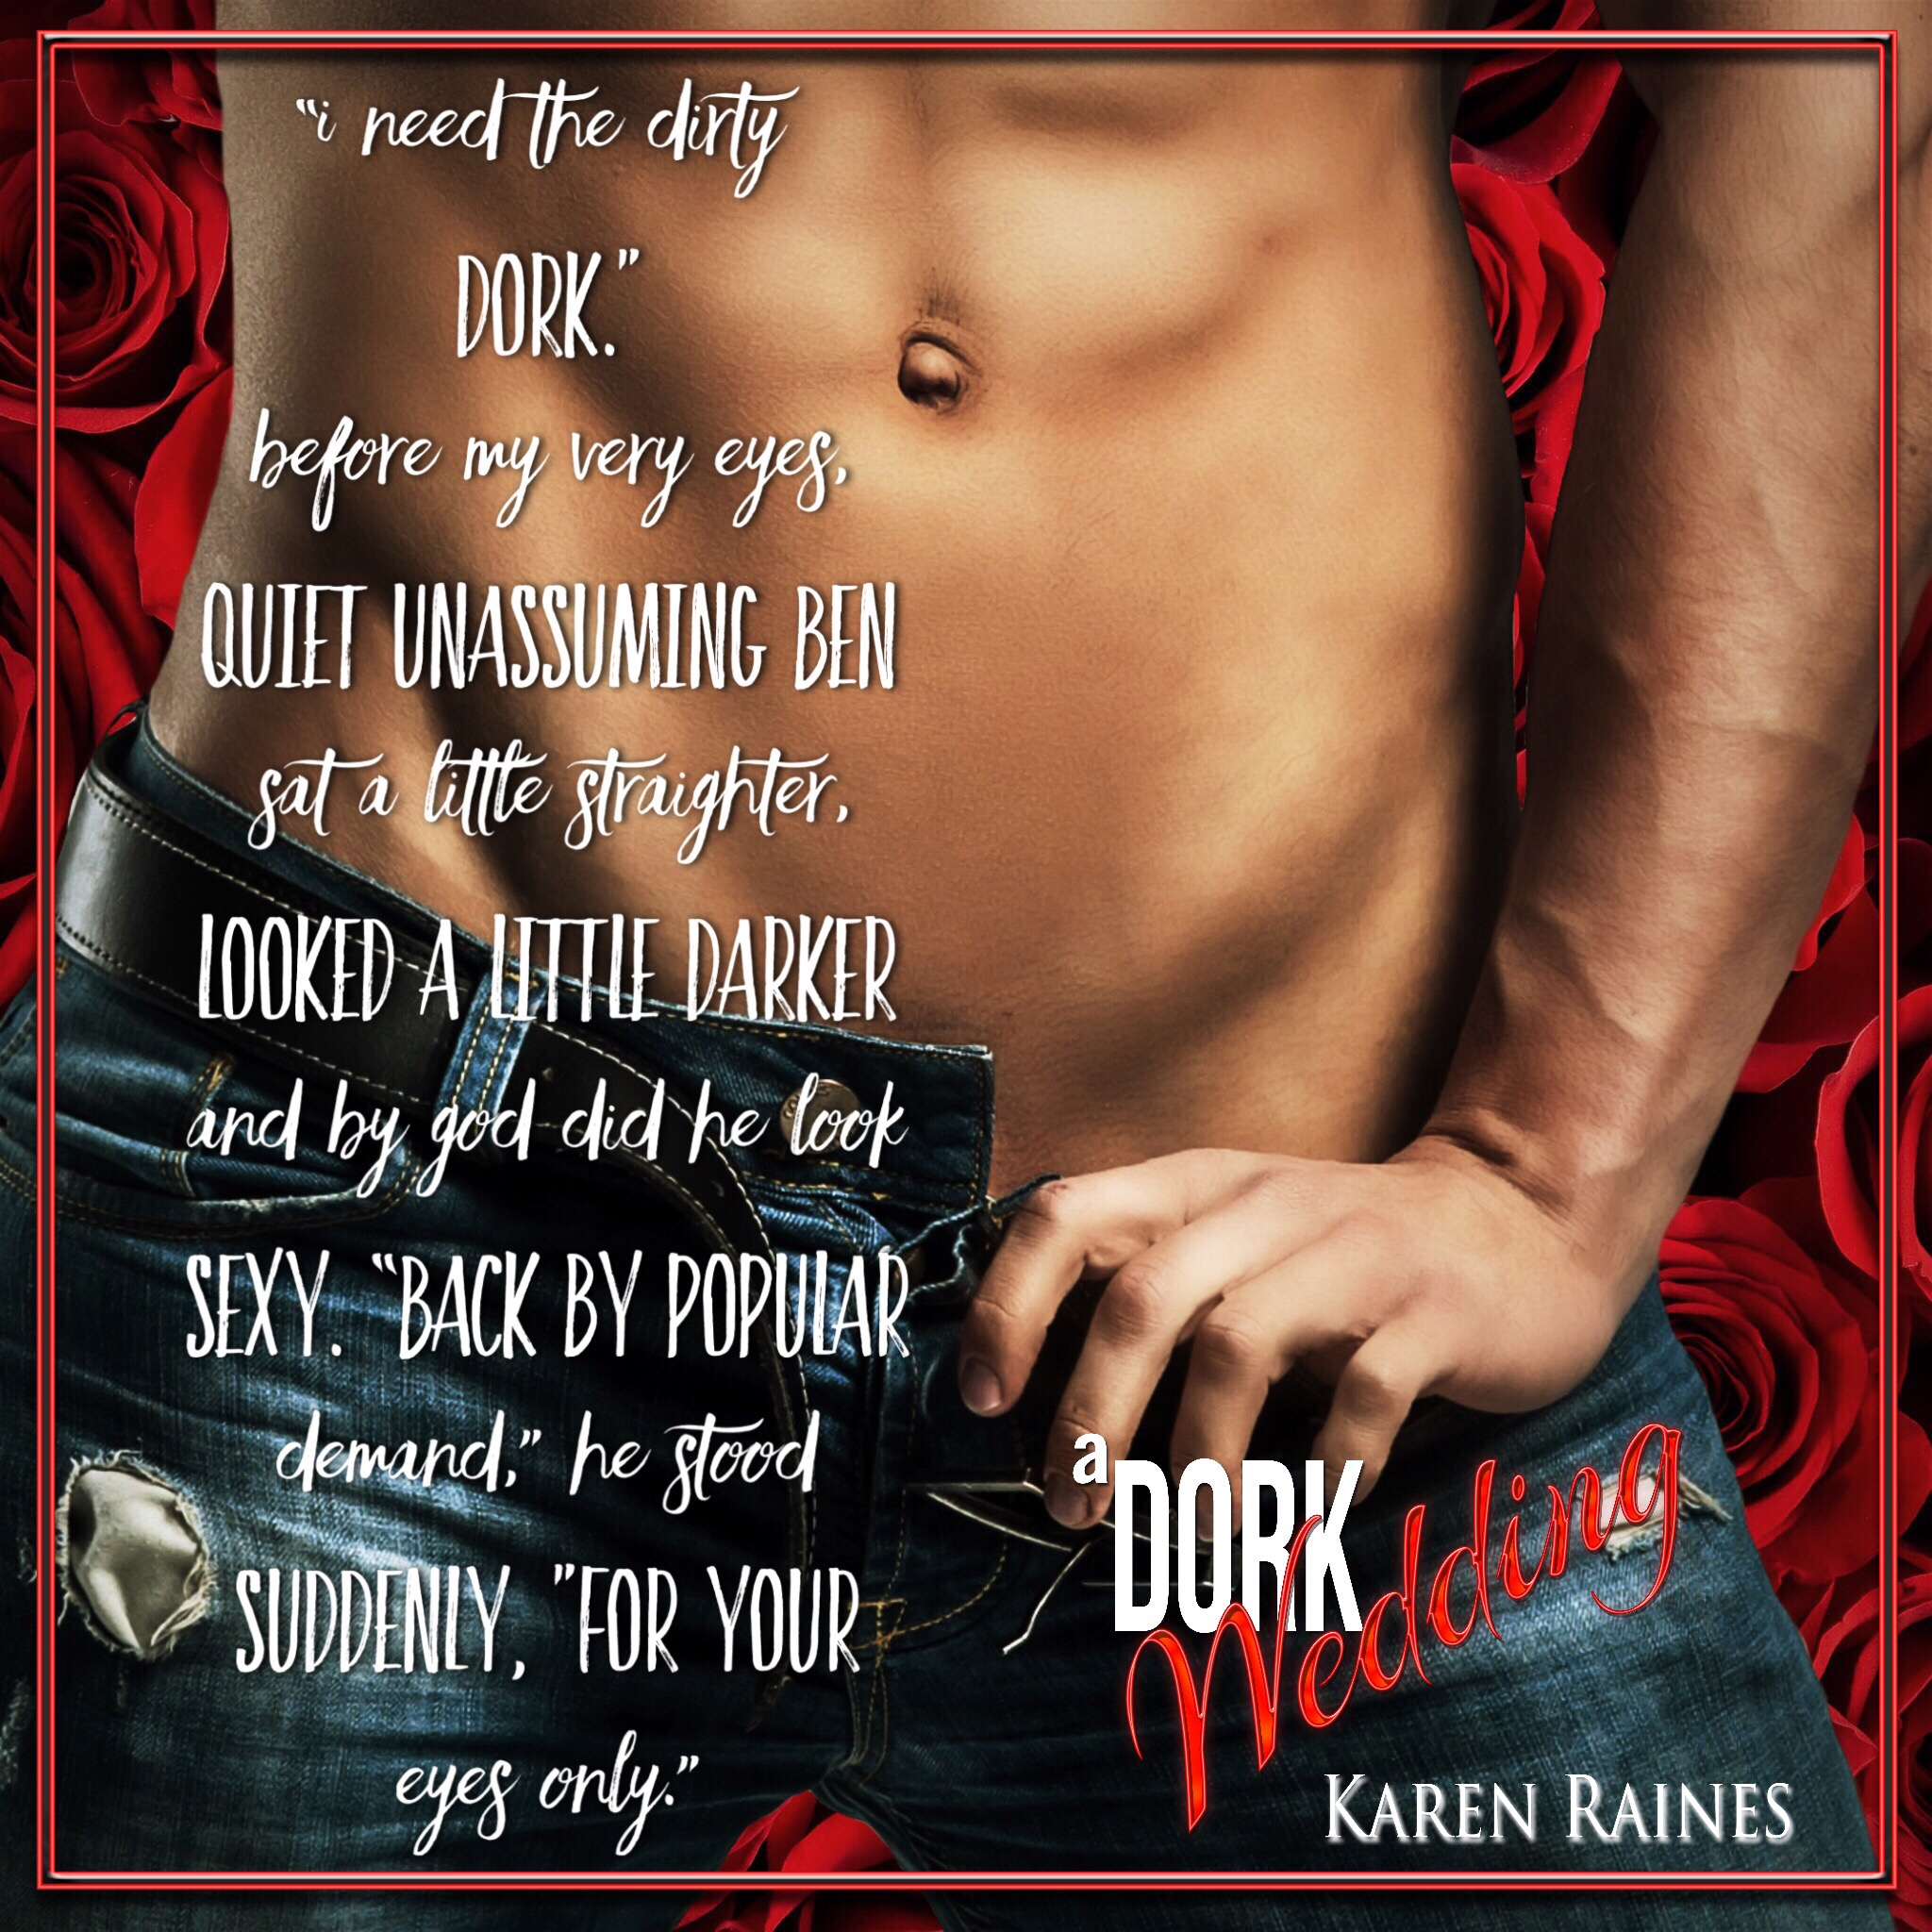 a Dork Wedding (Karen Raines)